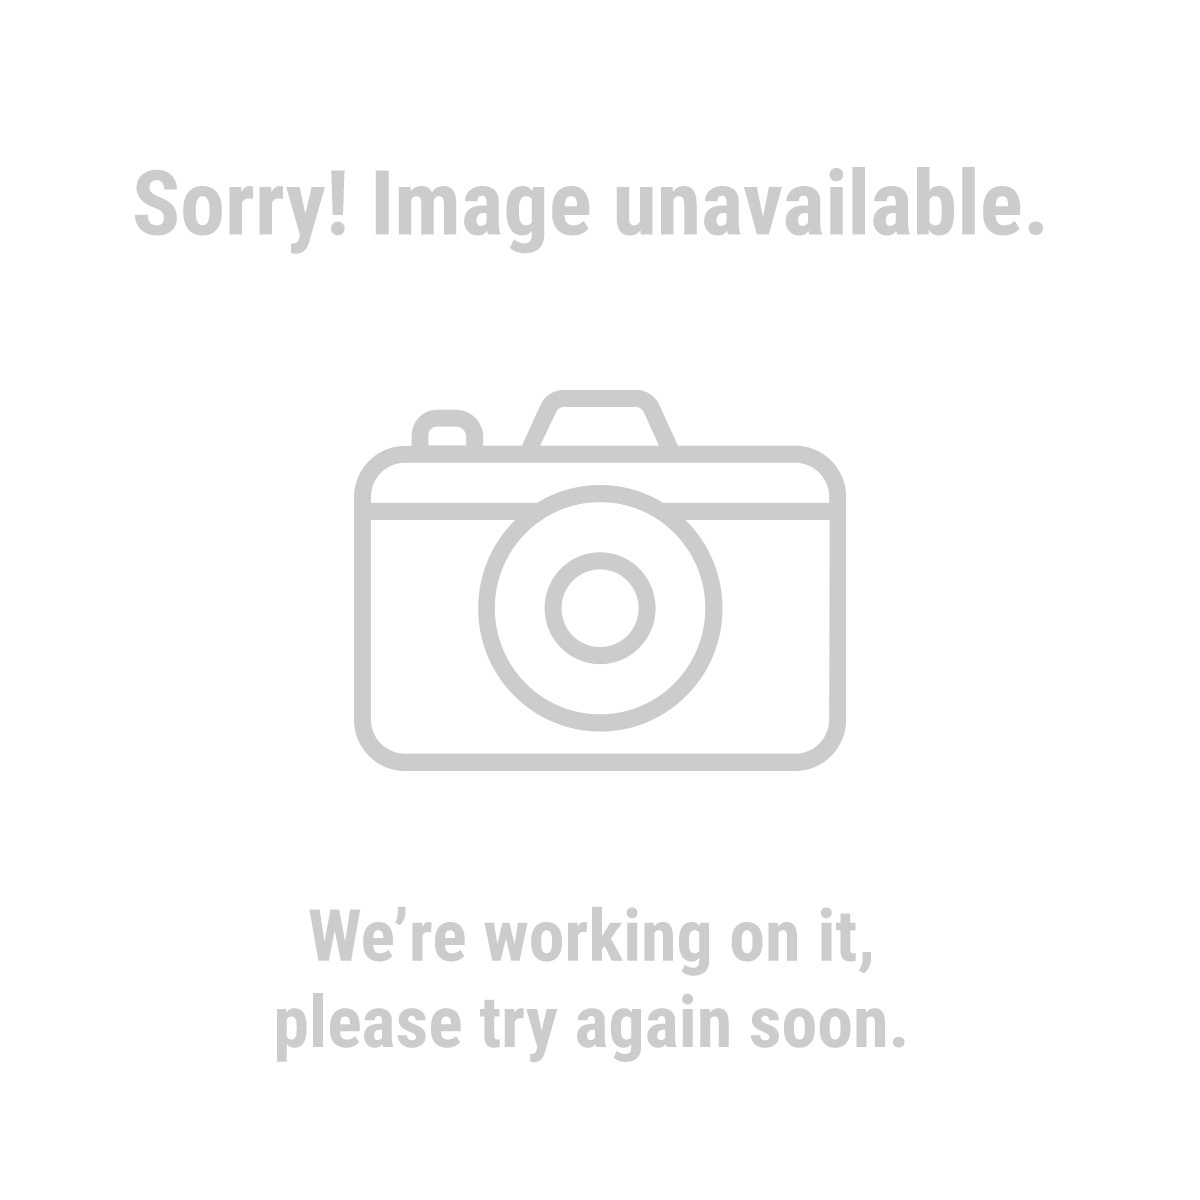 10 Ft X 20 Ft Portable Car Canopy